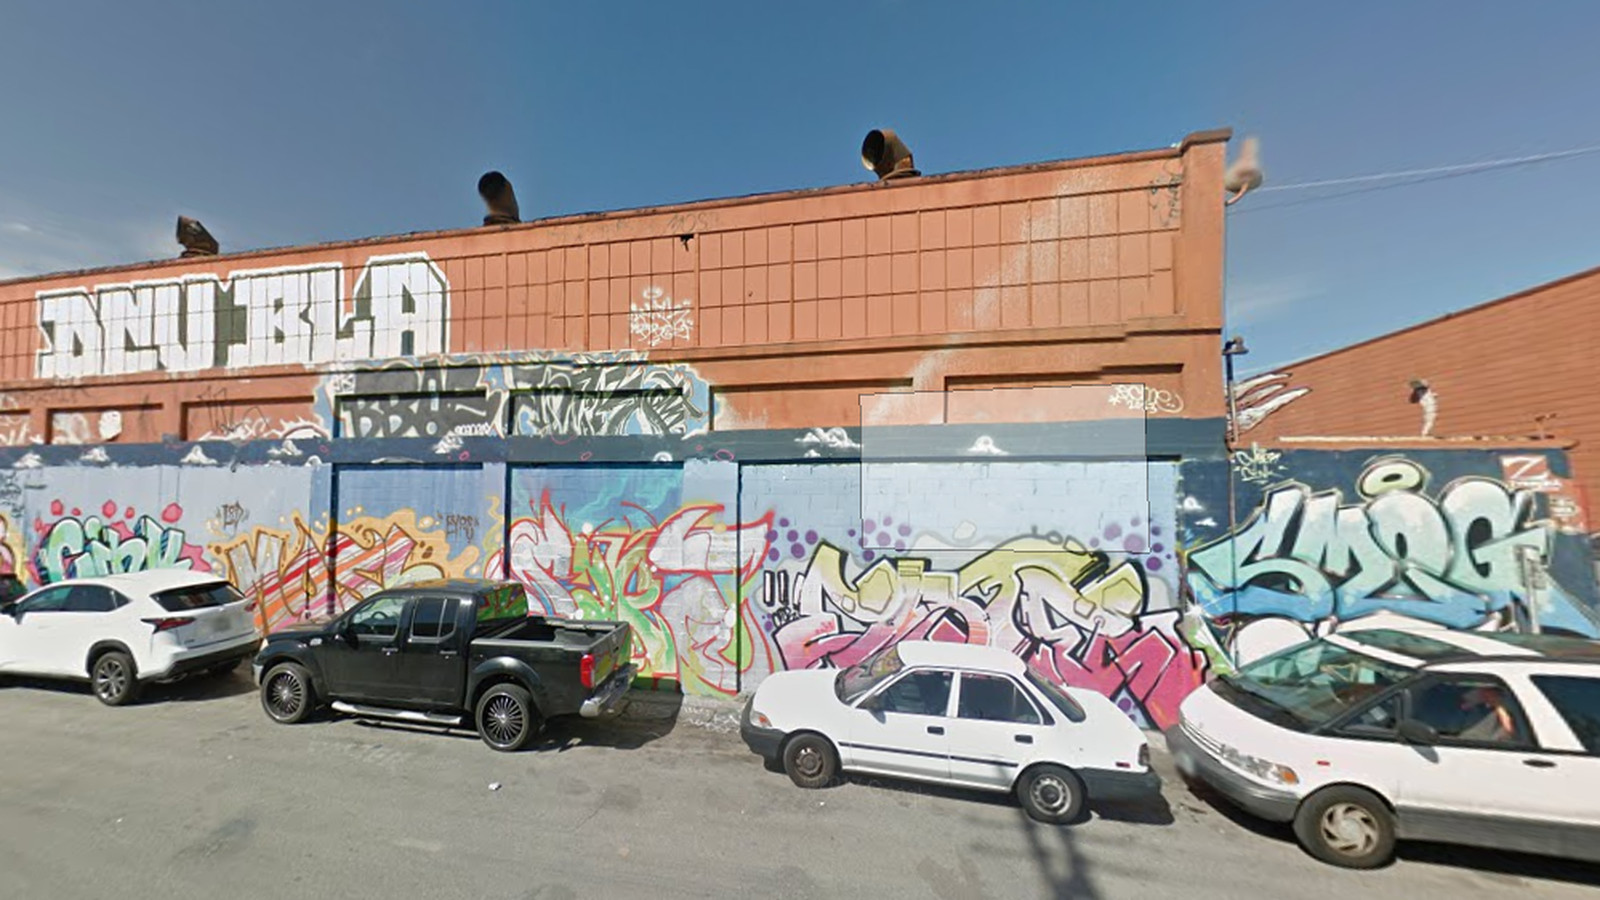 Chinatown warehouses could become an entertainment destination